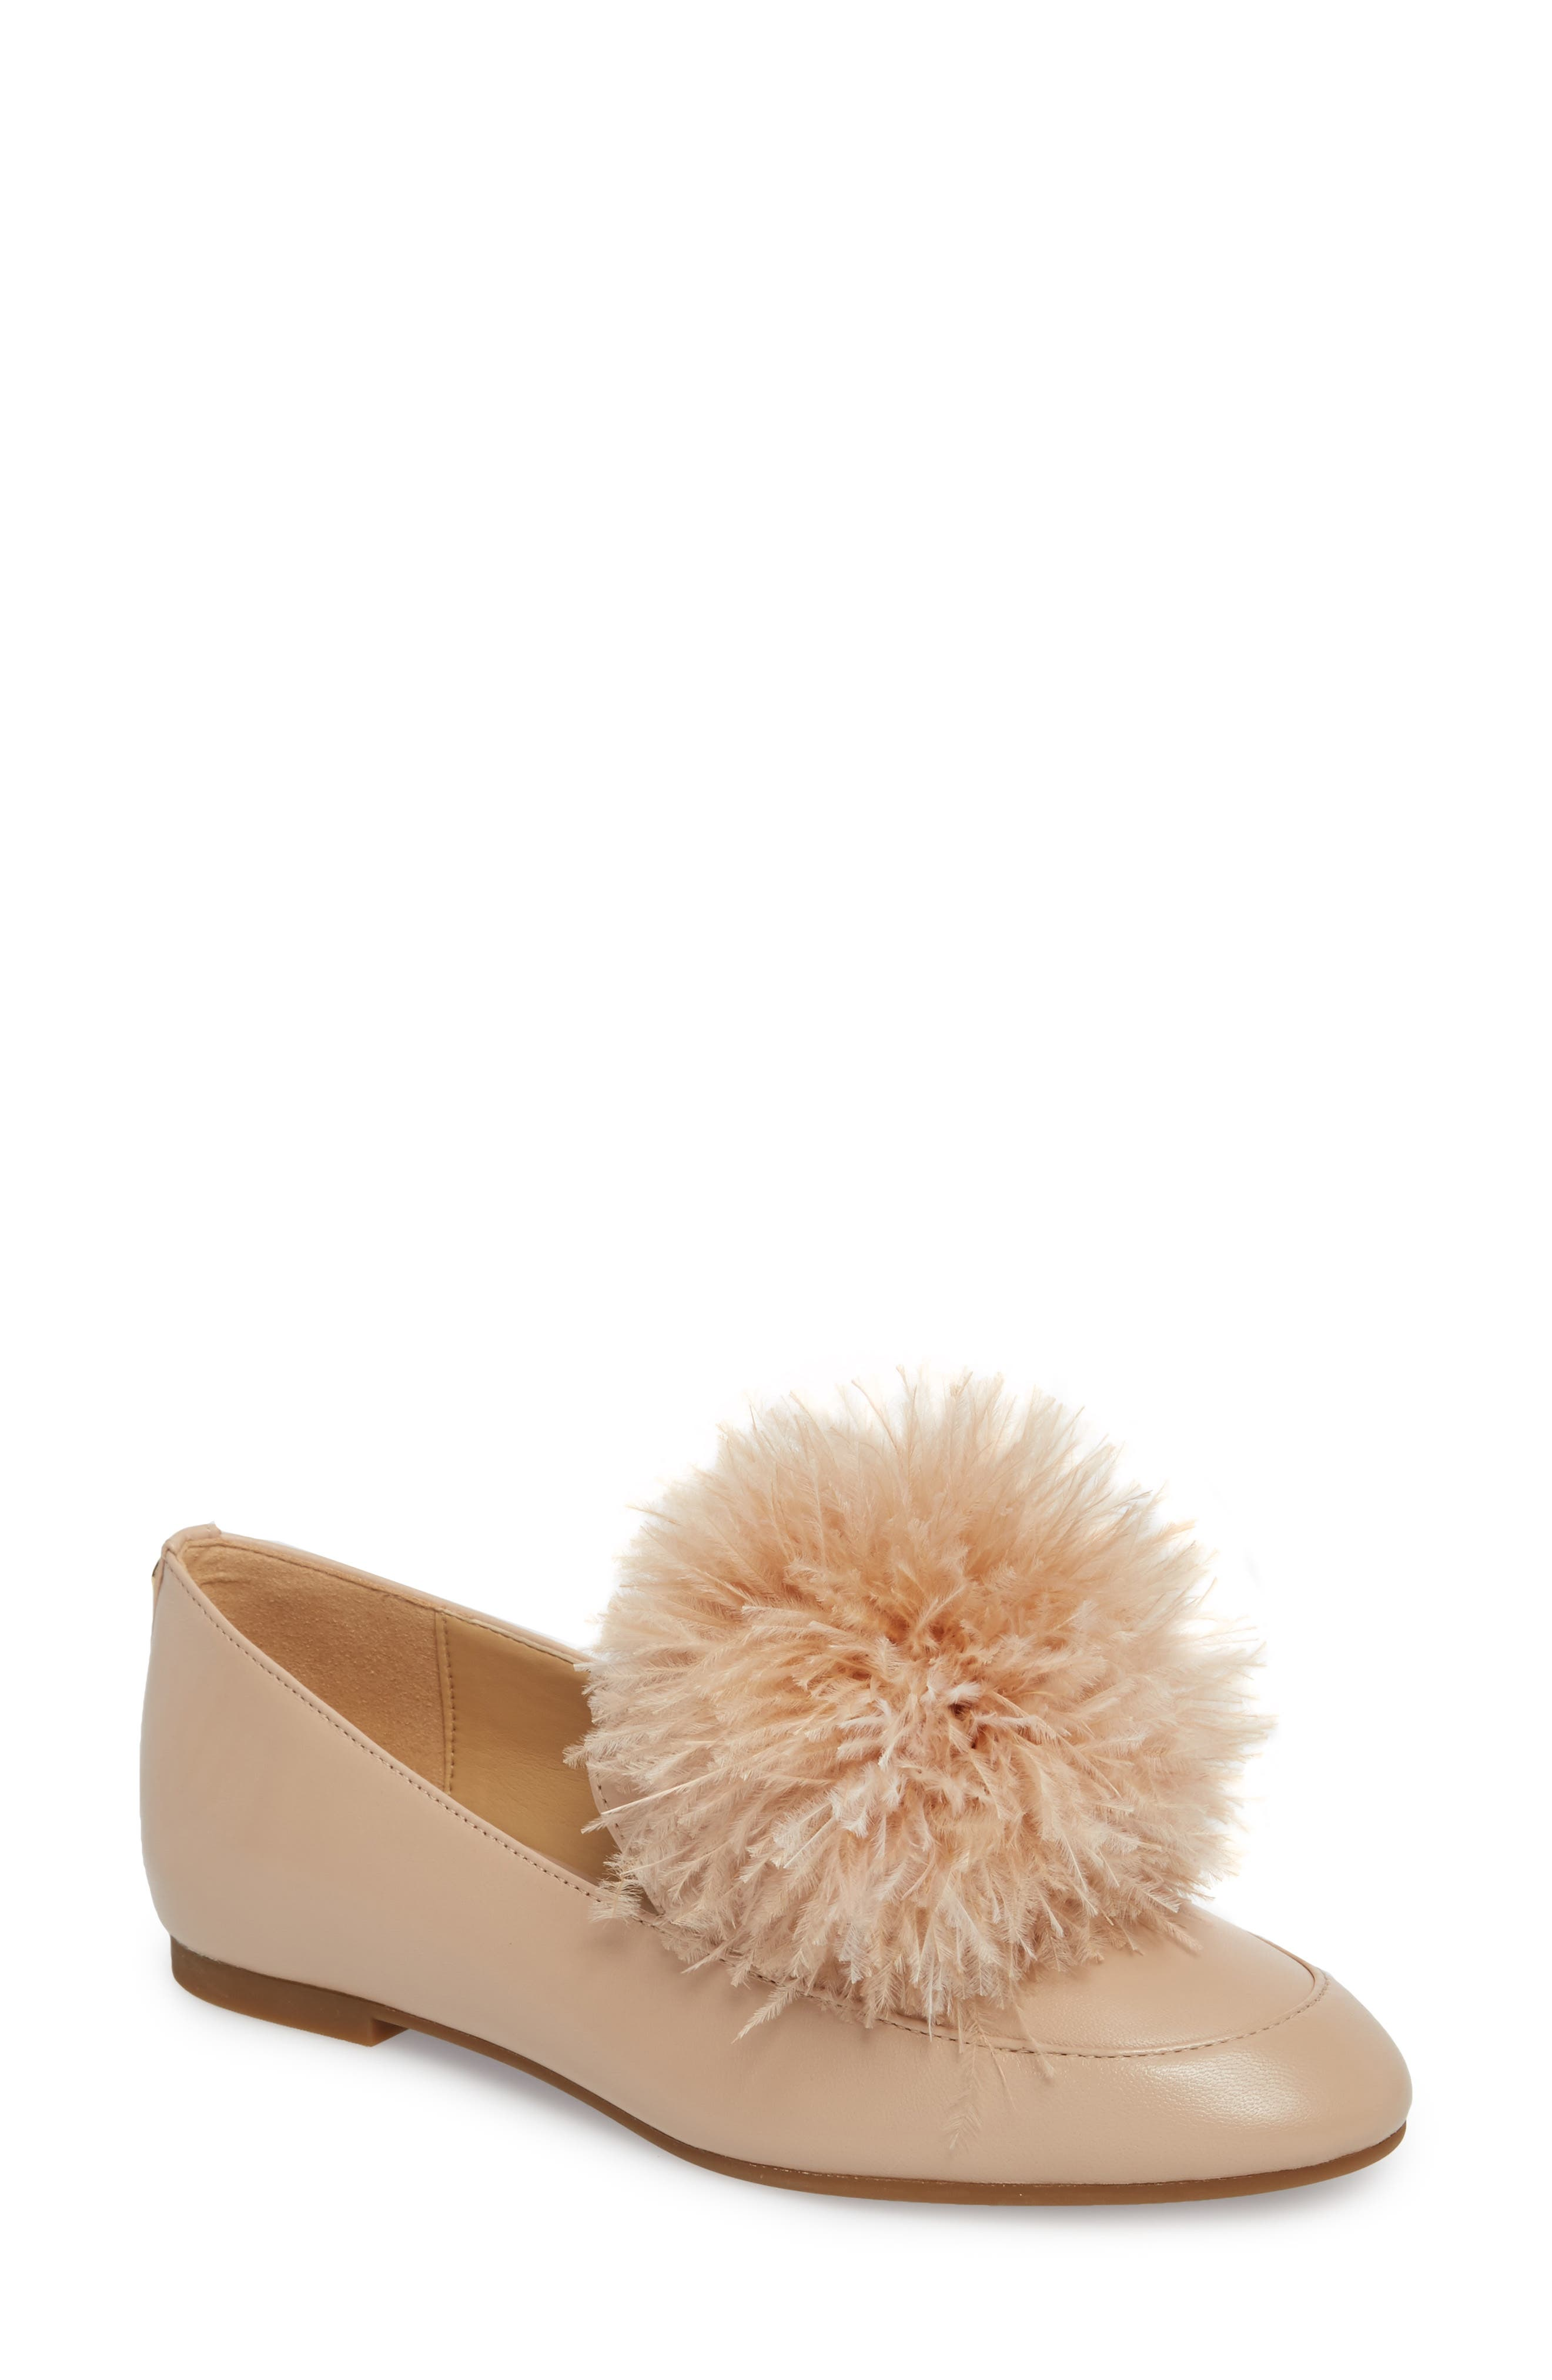 Fara Feather Pom Loafer,                             Main thumbnail 1, color,                             Oyster Nappa Leather